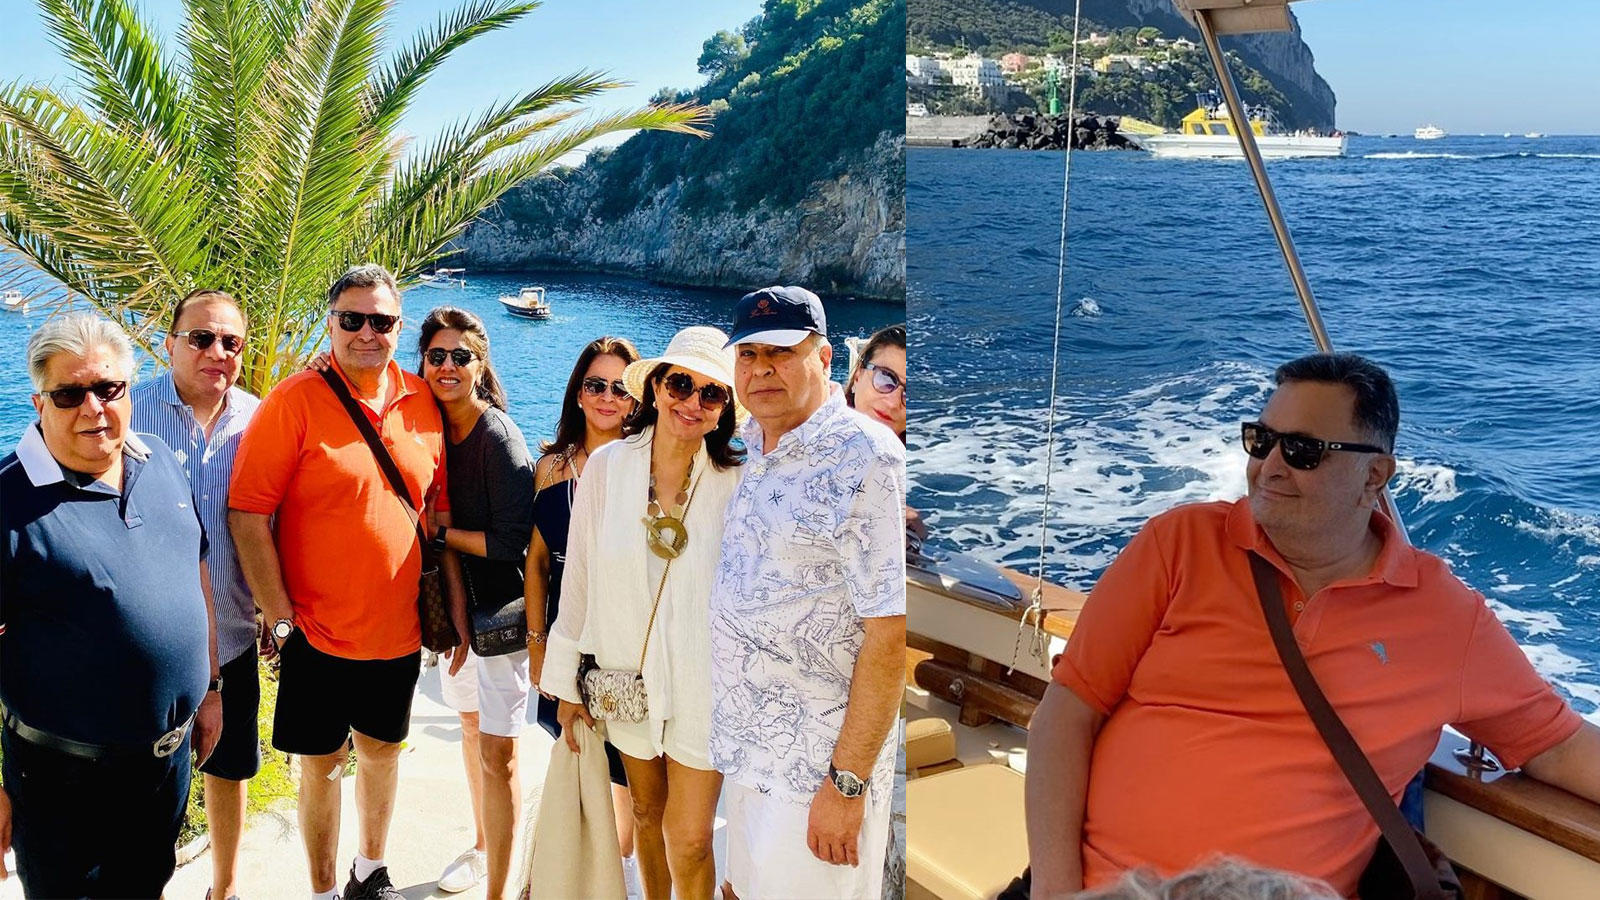 Rishi Kapoor and Neetu Kapoor sail away to Positano with 'crazy' friends, actress shares stunning views en route